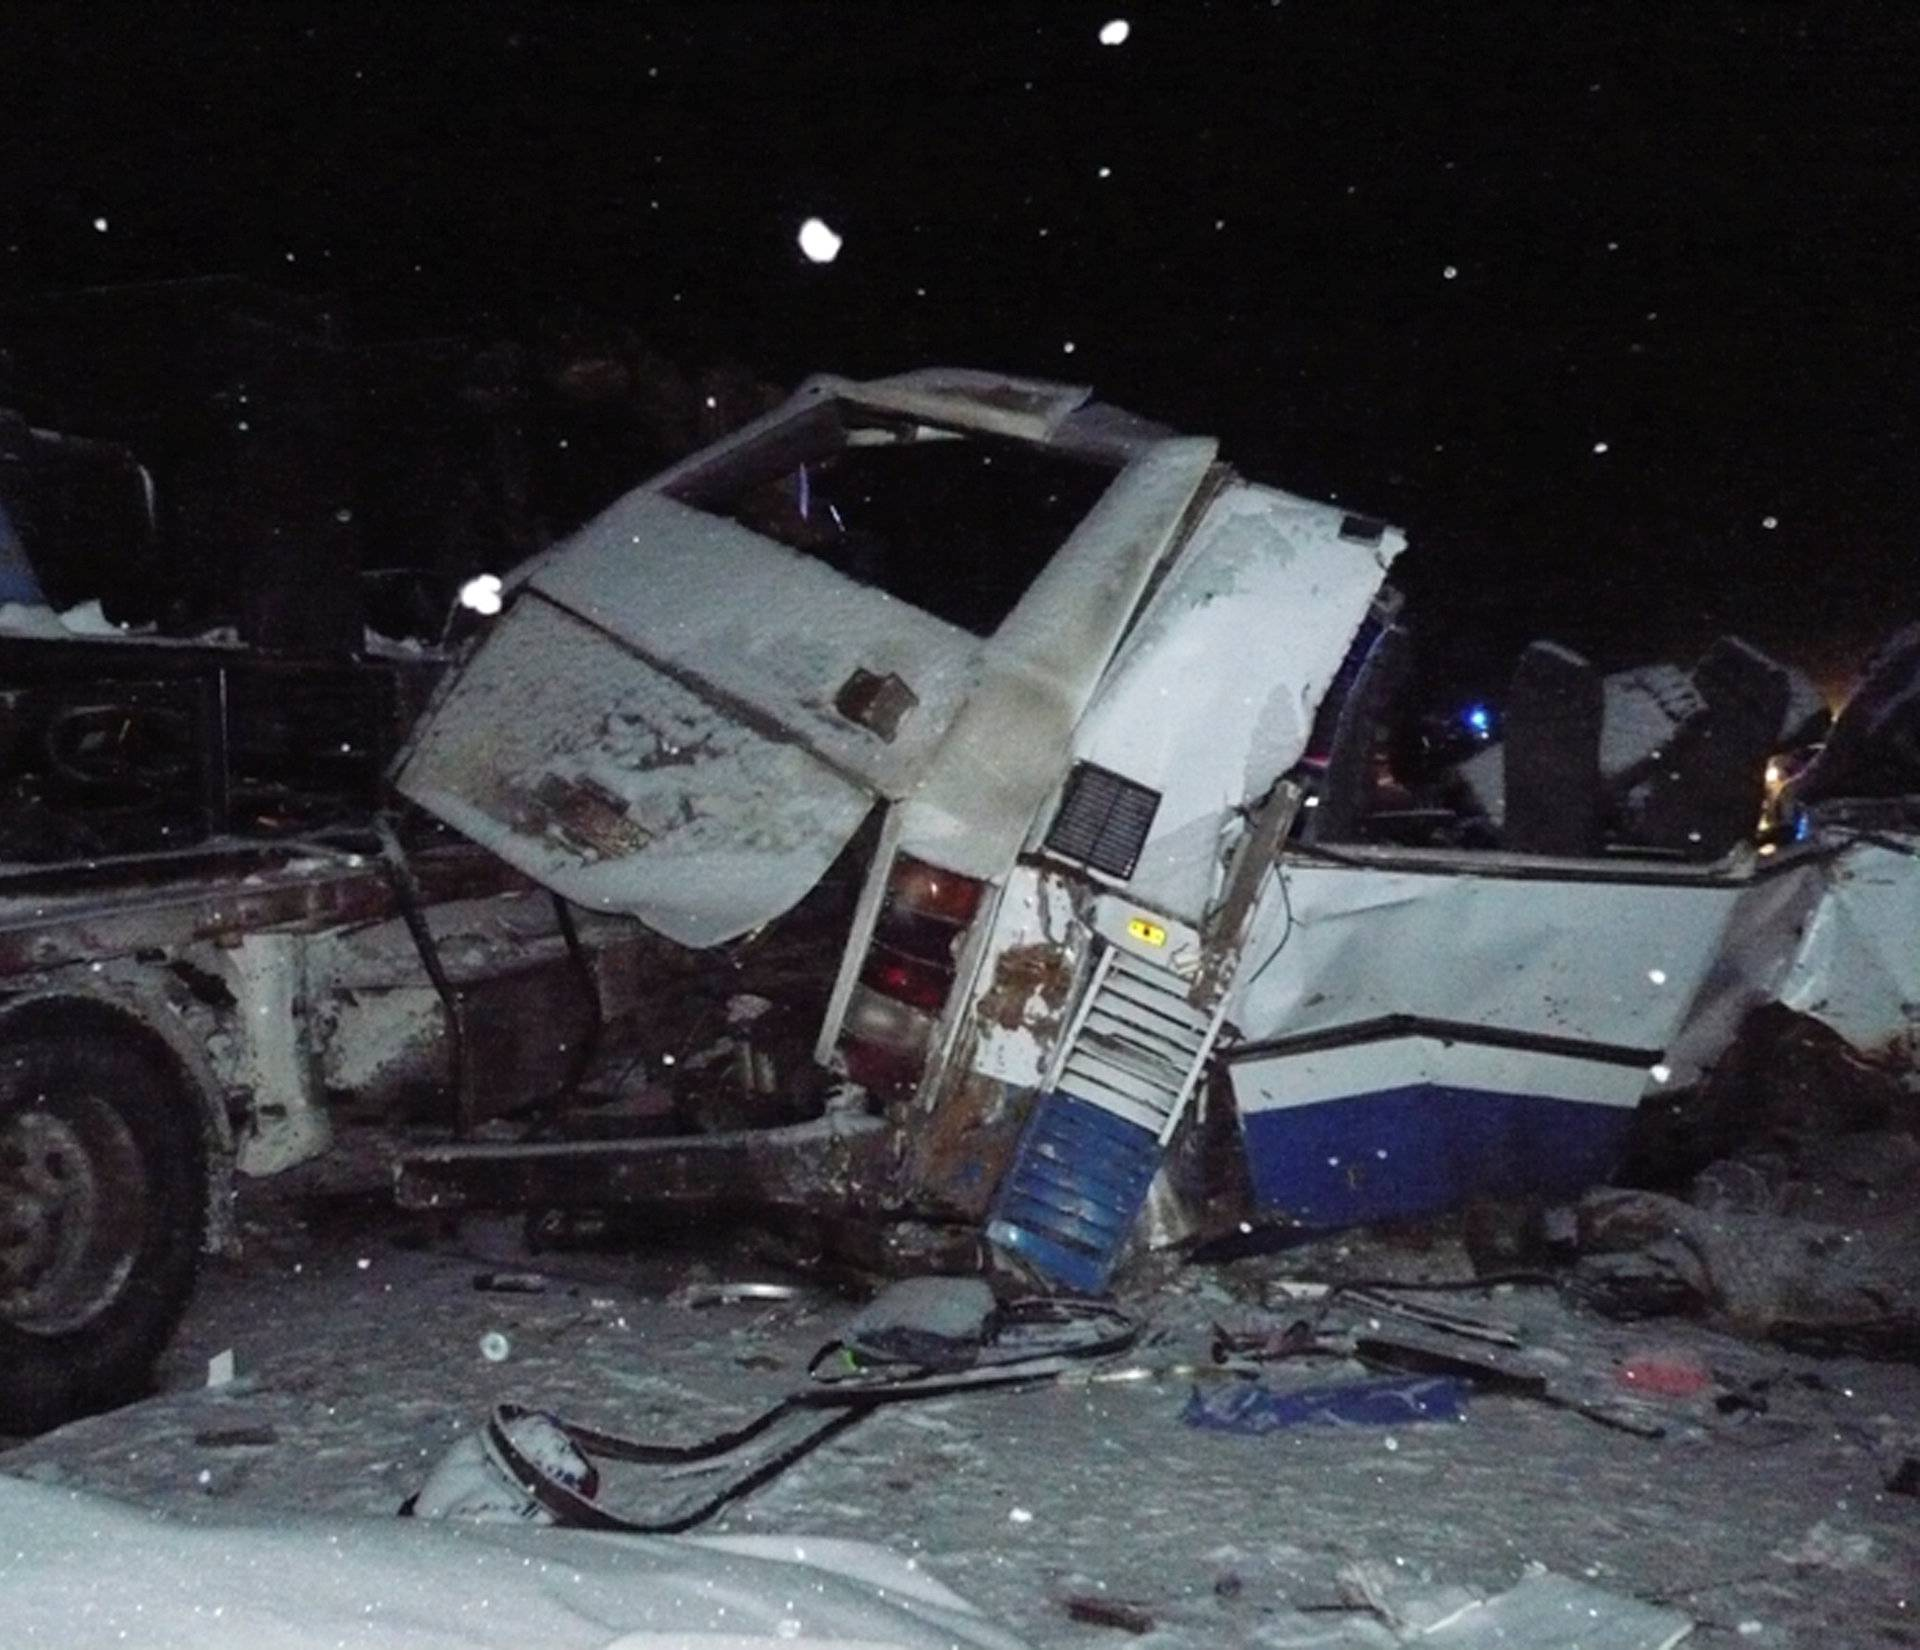 View shows wreckage of bus which got into road accident near Khanty-Mansiysk